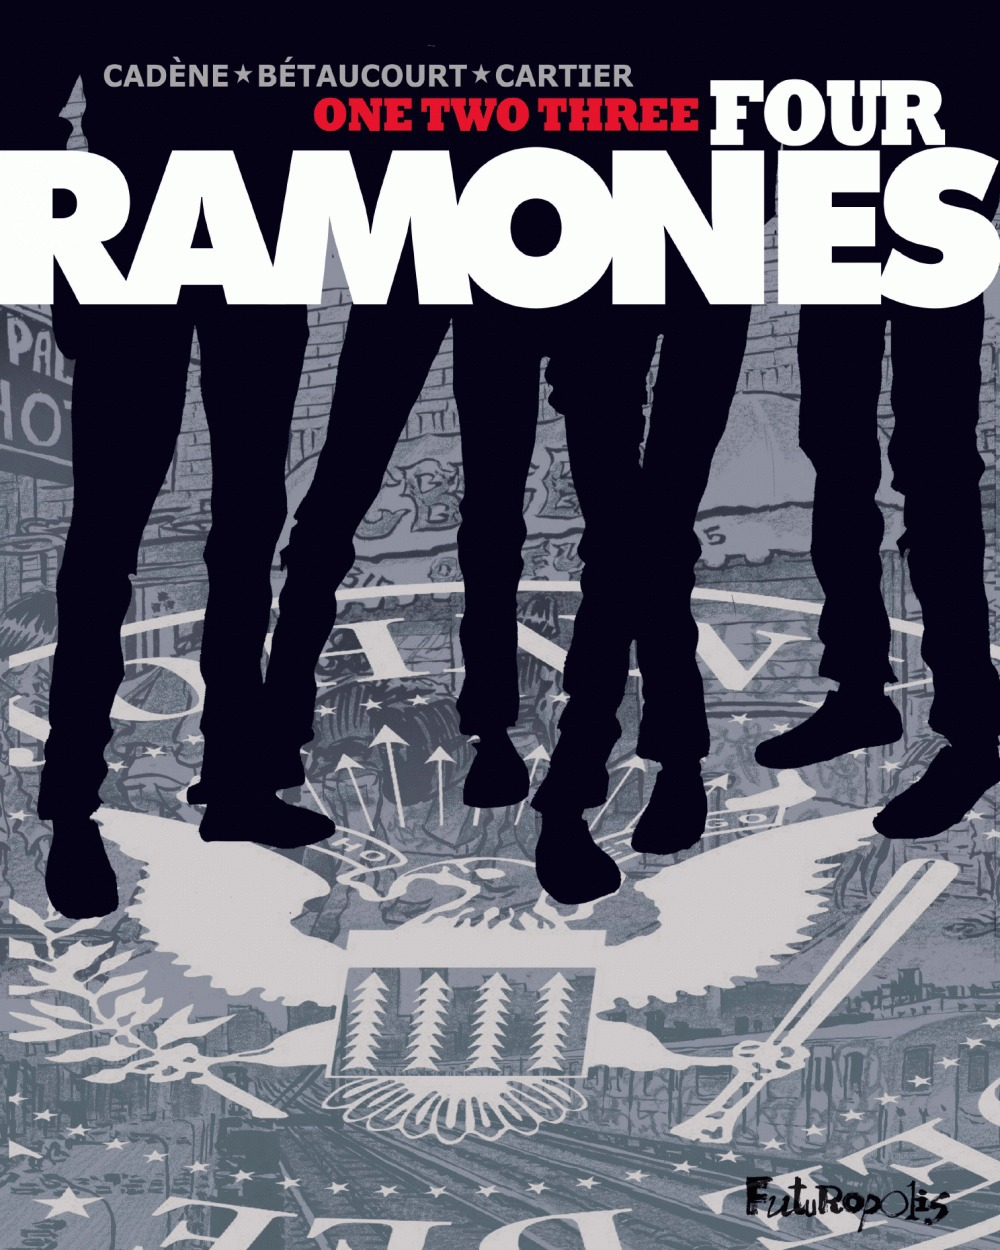 One, two, three, four Ramones